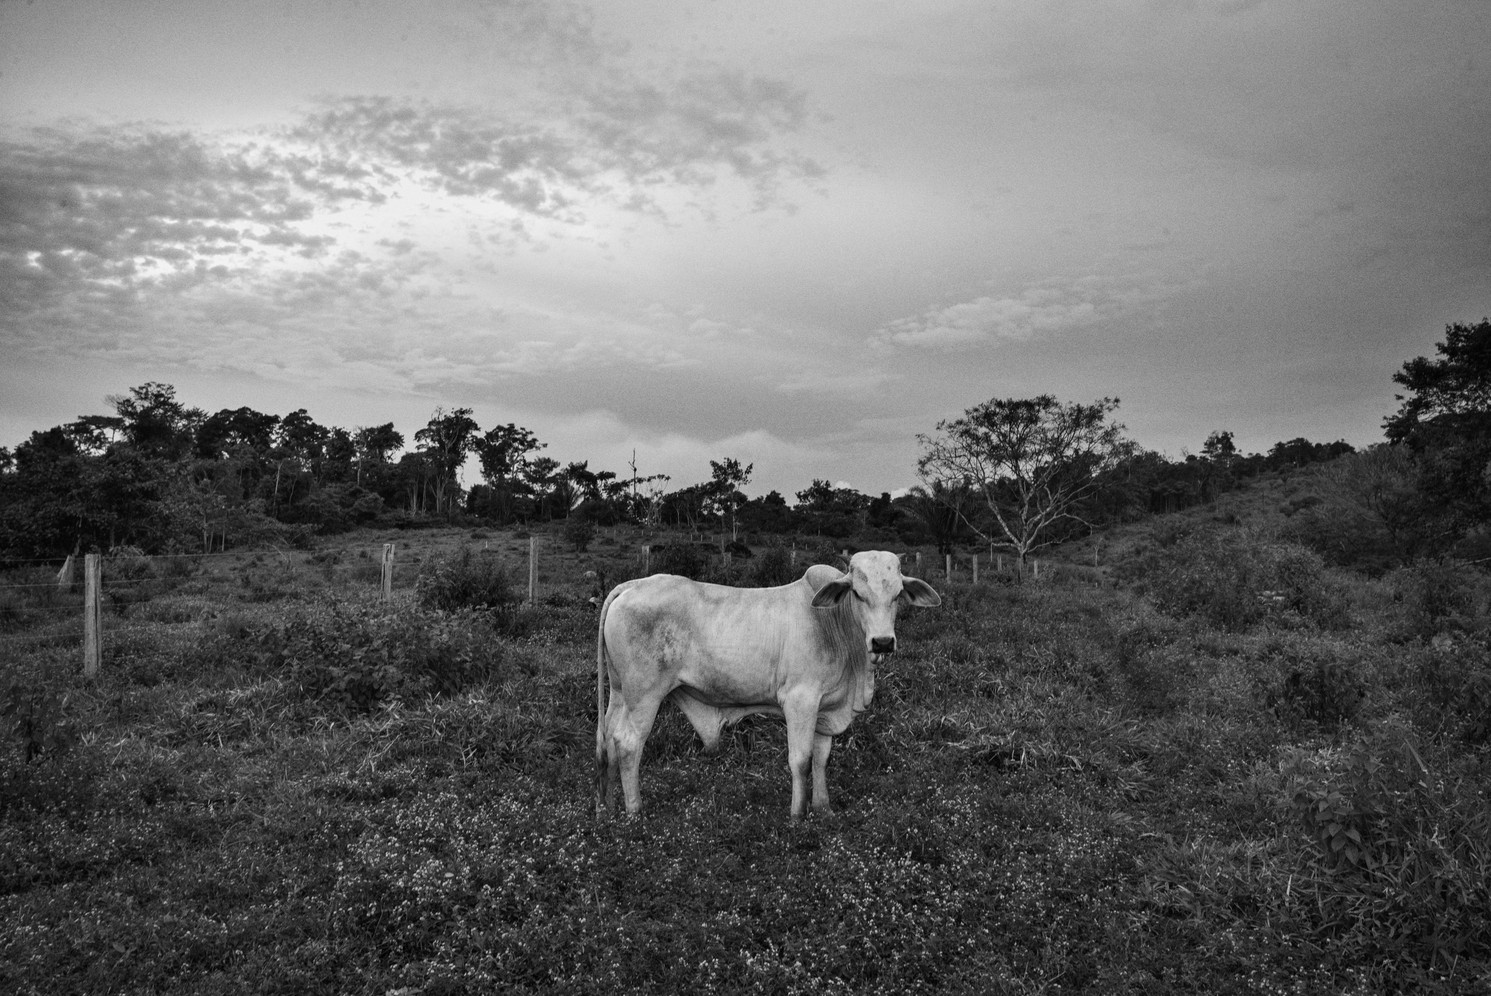 A cow grazes in Southwestern Pará state. In Brazil's Amazon states, the vast majority of deforested lands become cattle pasture. As global commodity prices fell, Brazil beef prices have held fairly steadily and cattle is seen as a safe bet for investors and speculators. Criminal gangs also plant cows on illegally occupied lands to pretend it is being used for farming before they sell it on the black market. Brazil is the world's largest beef exporter with Hong Kong, China and Russia the biggest buyers.